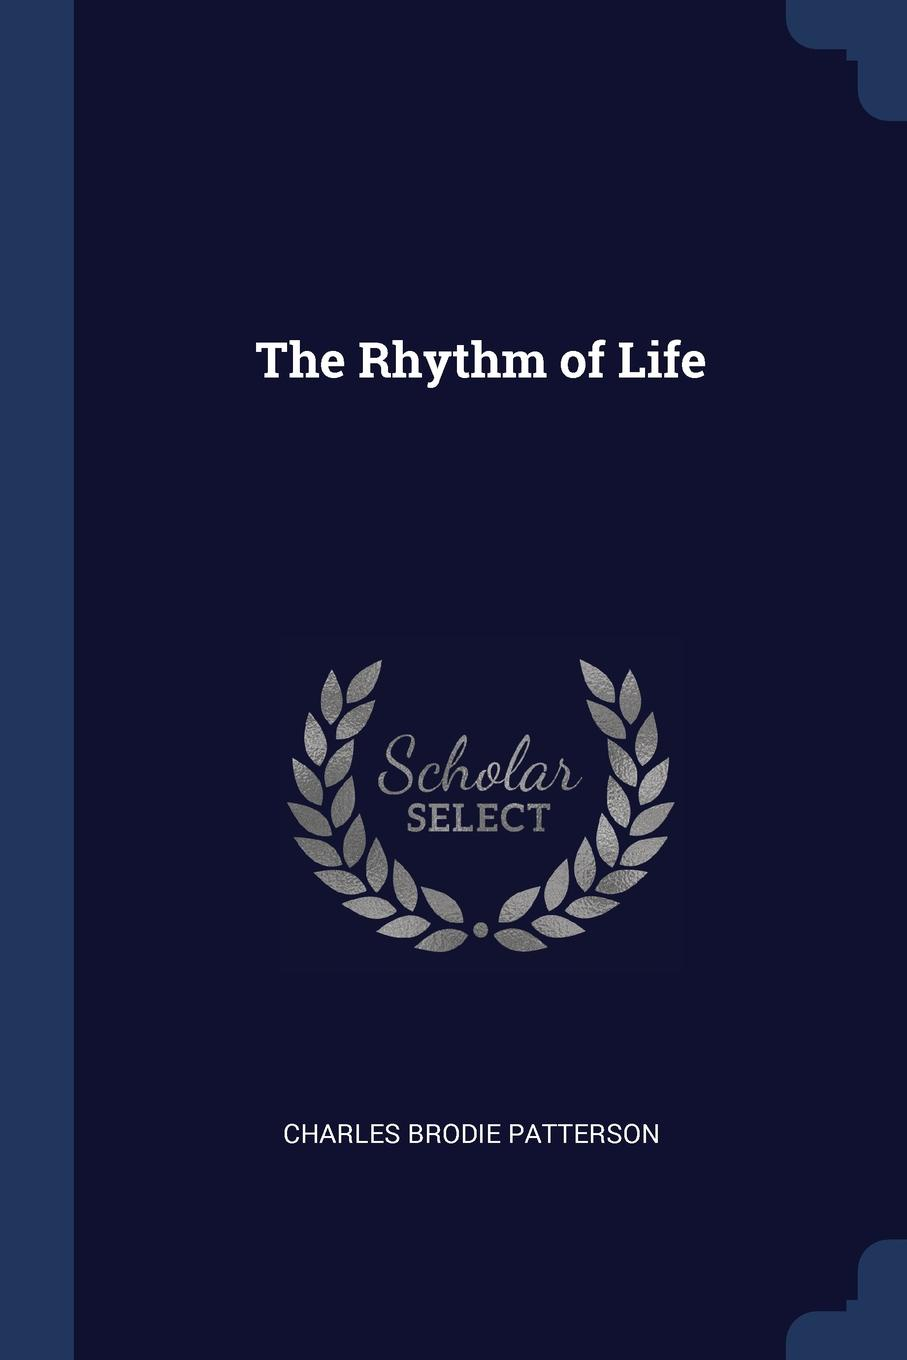 The Rhythm of Life. Charles Brodie Patterson